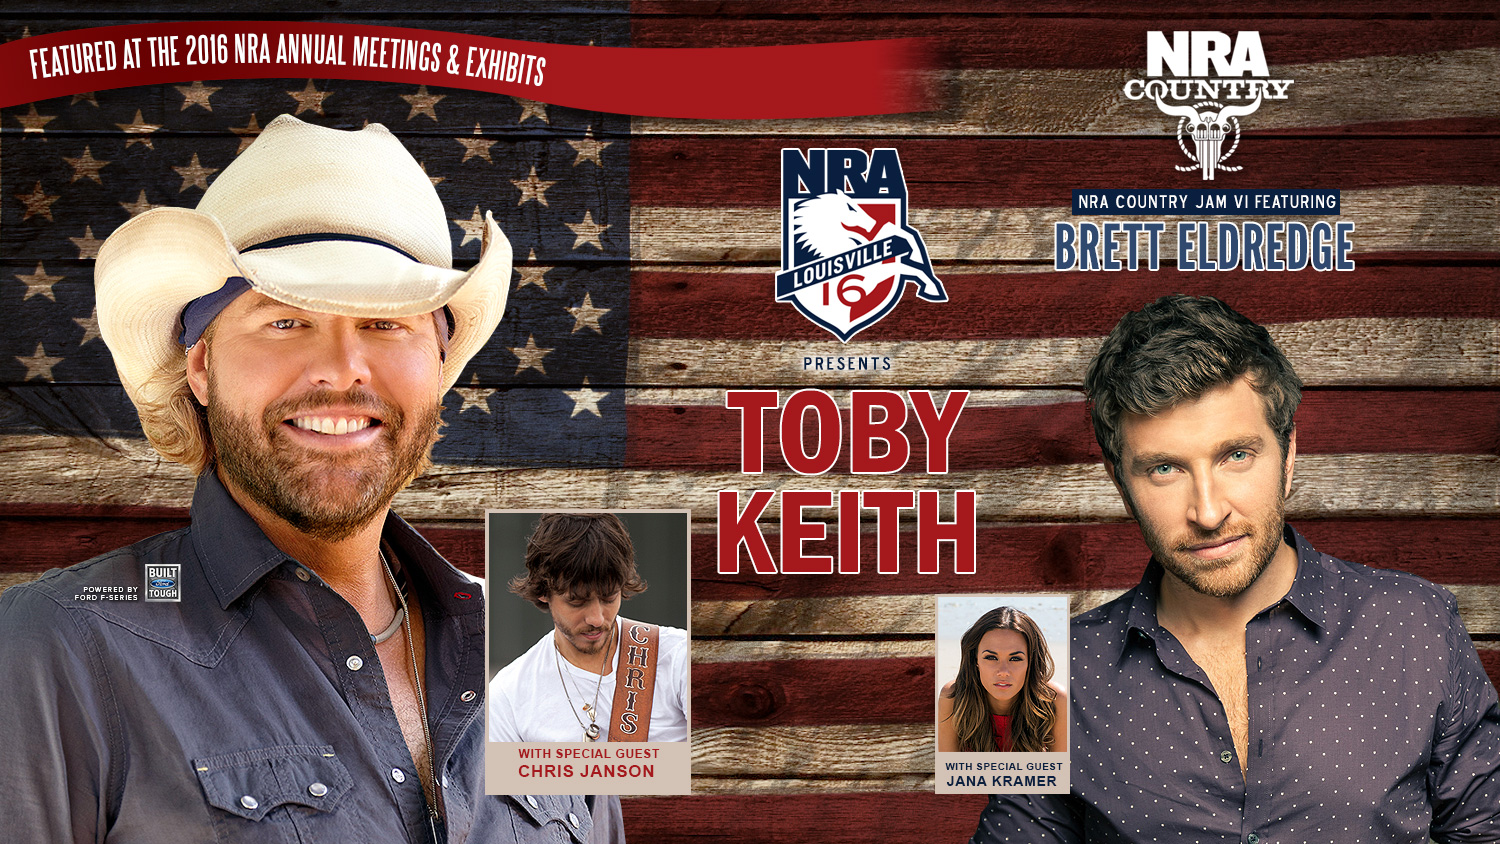 NRA Presents Toby Keith and NRA Country Jam